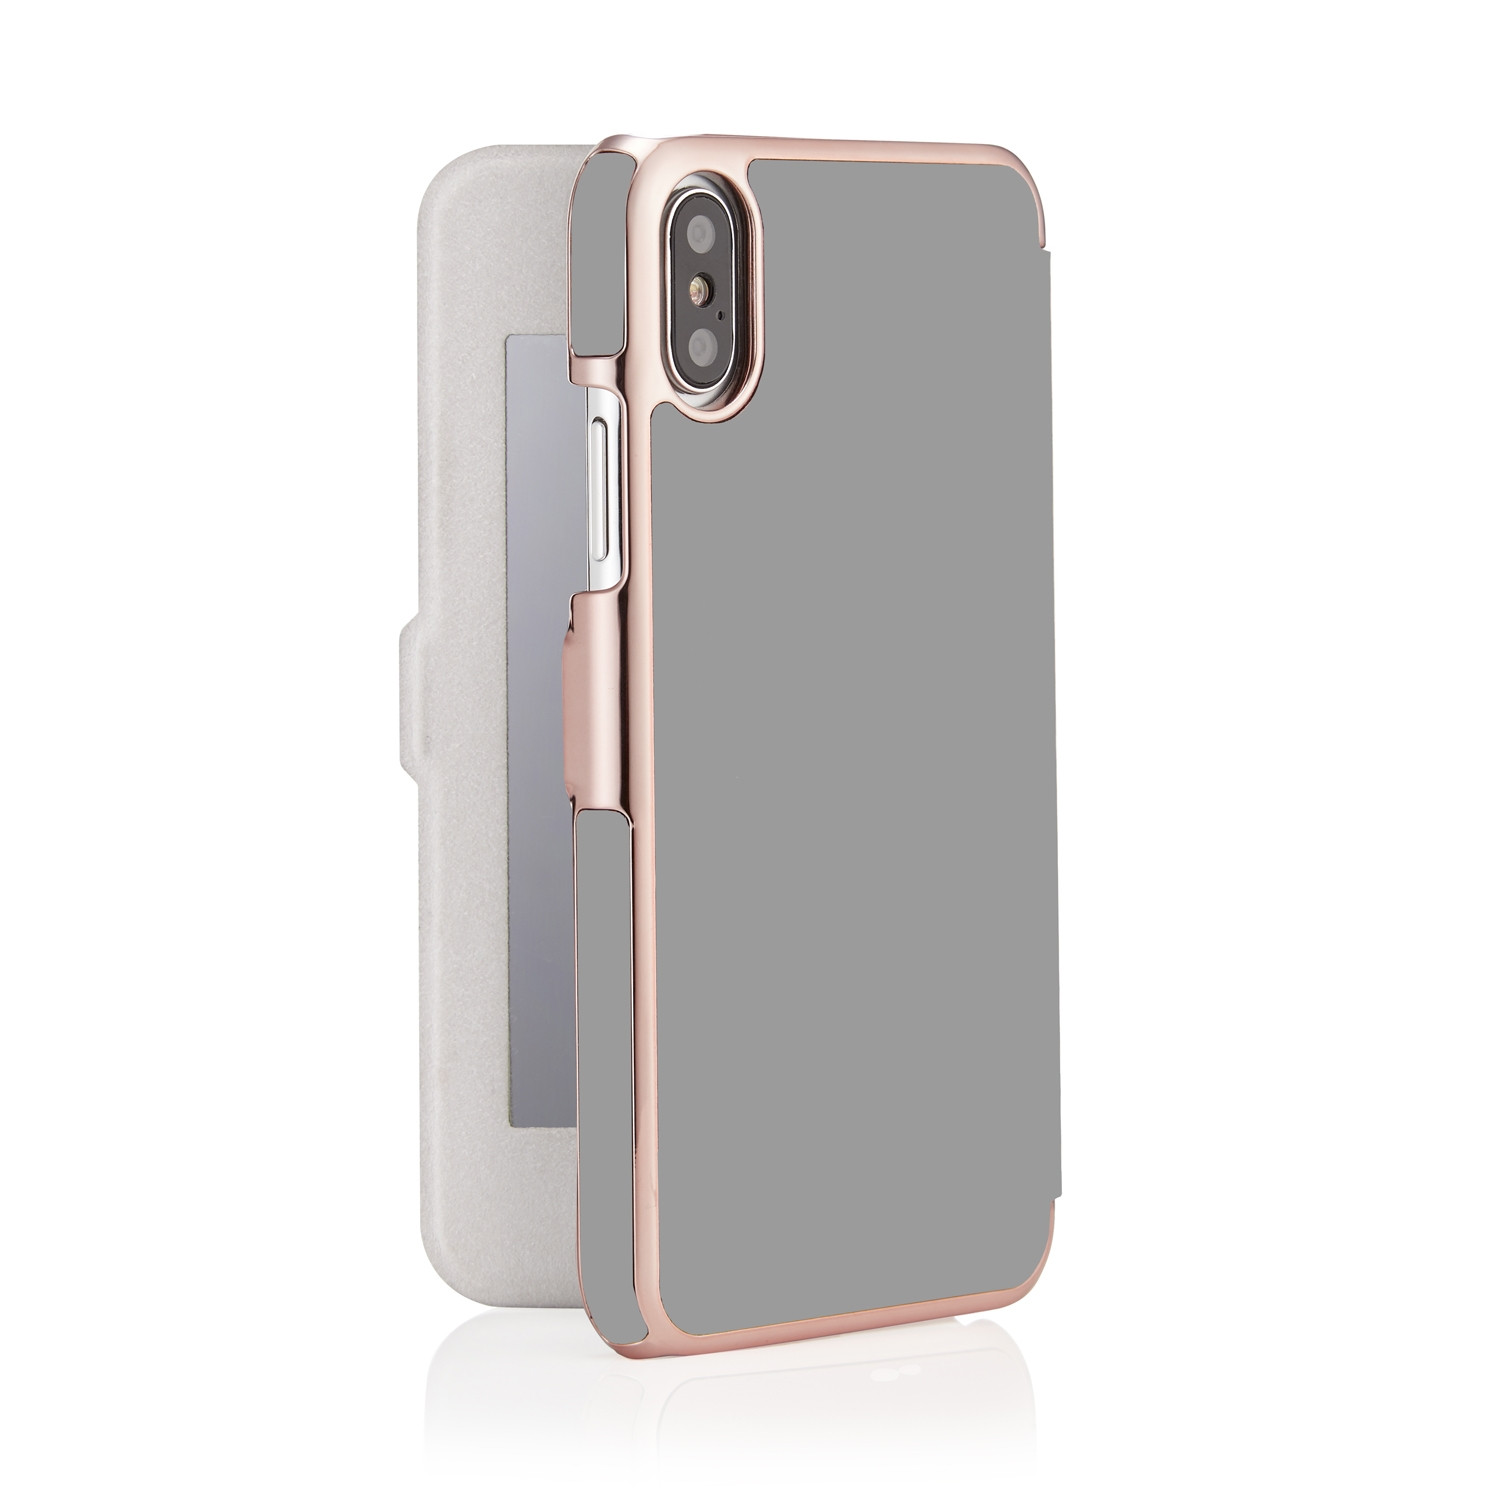 100% authentic c8372 f27d6 iPhone X/XS Slim Mirror Case - Grey & Rose Gold (Online Exclusive)